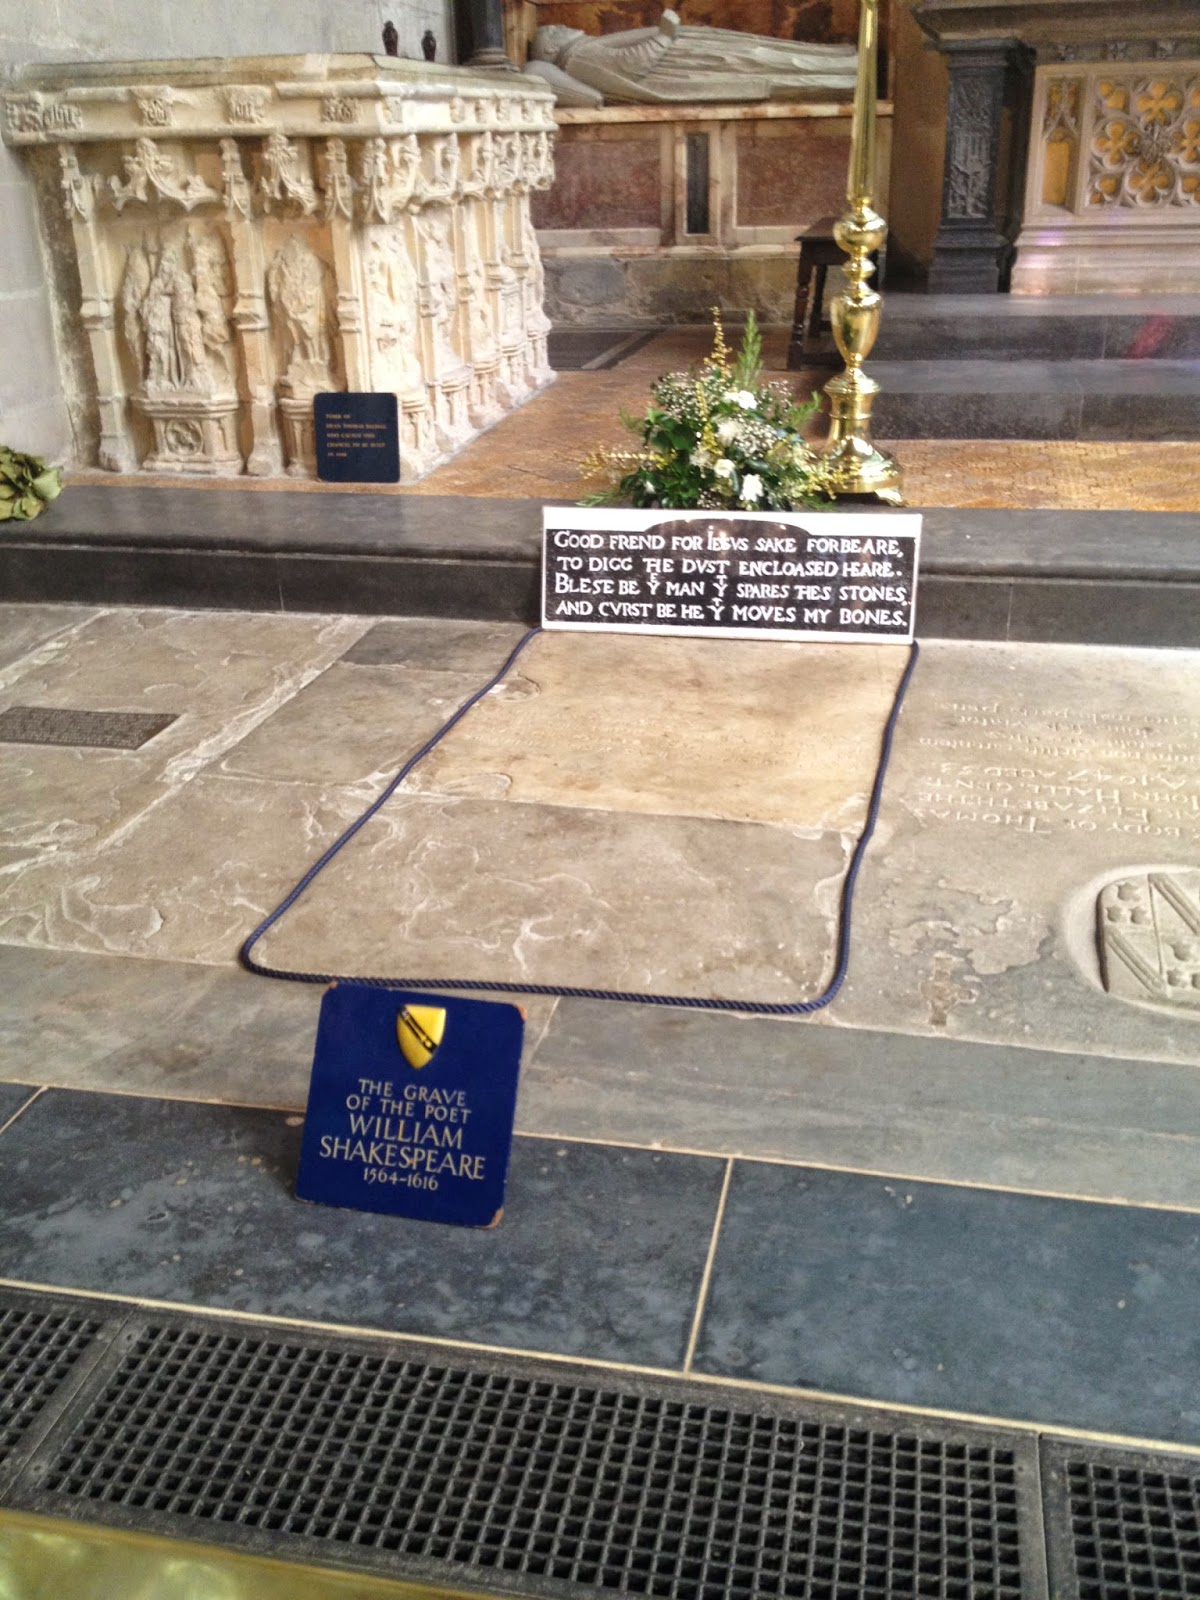 Shakespeare's Grave (photo credit: http://researchandramblings.blogspot.com/)